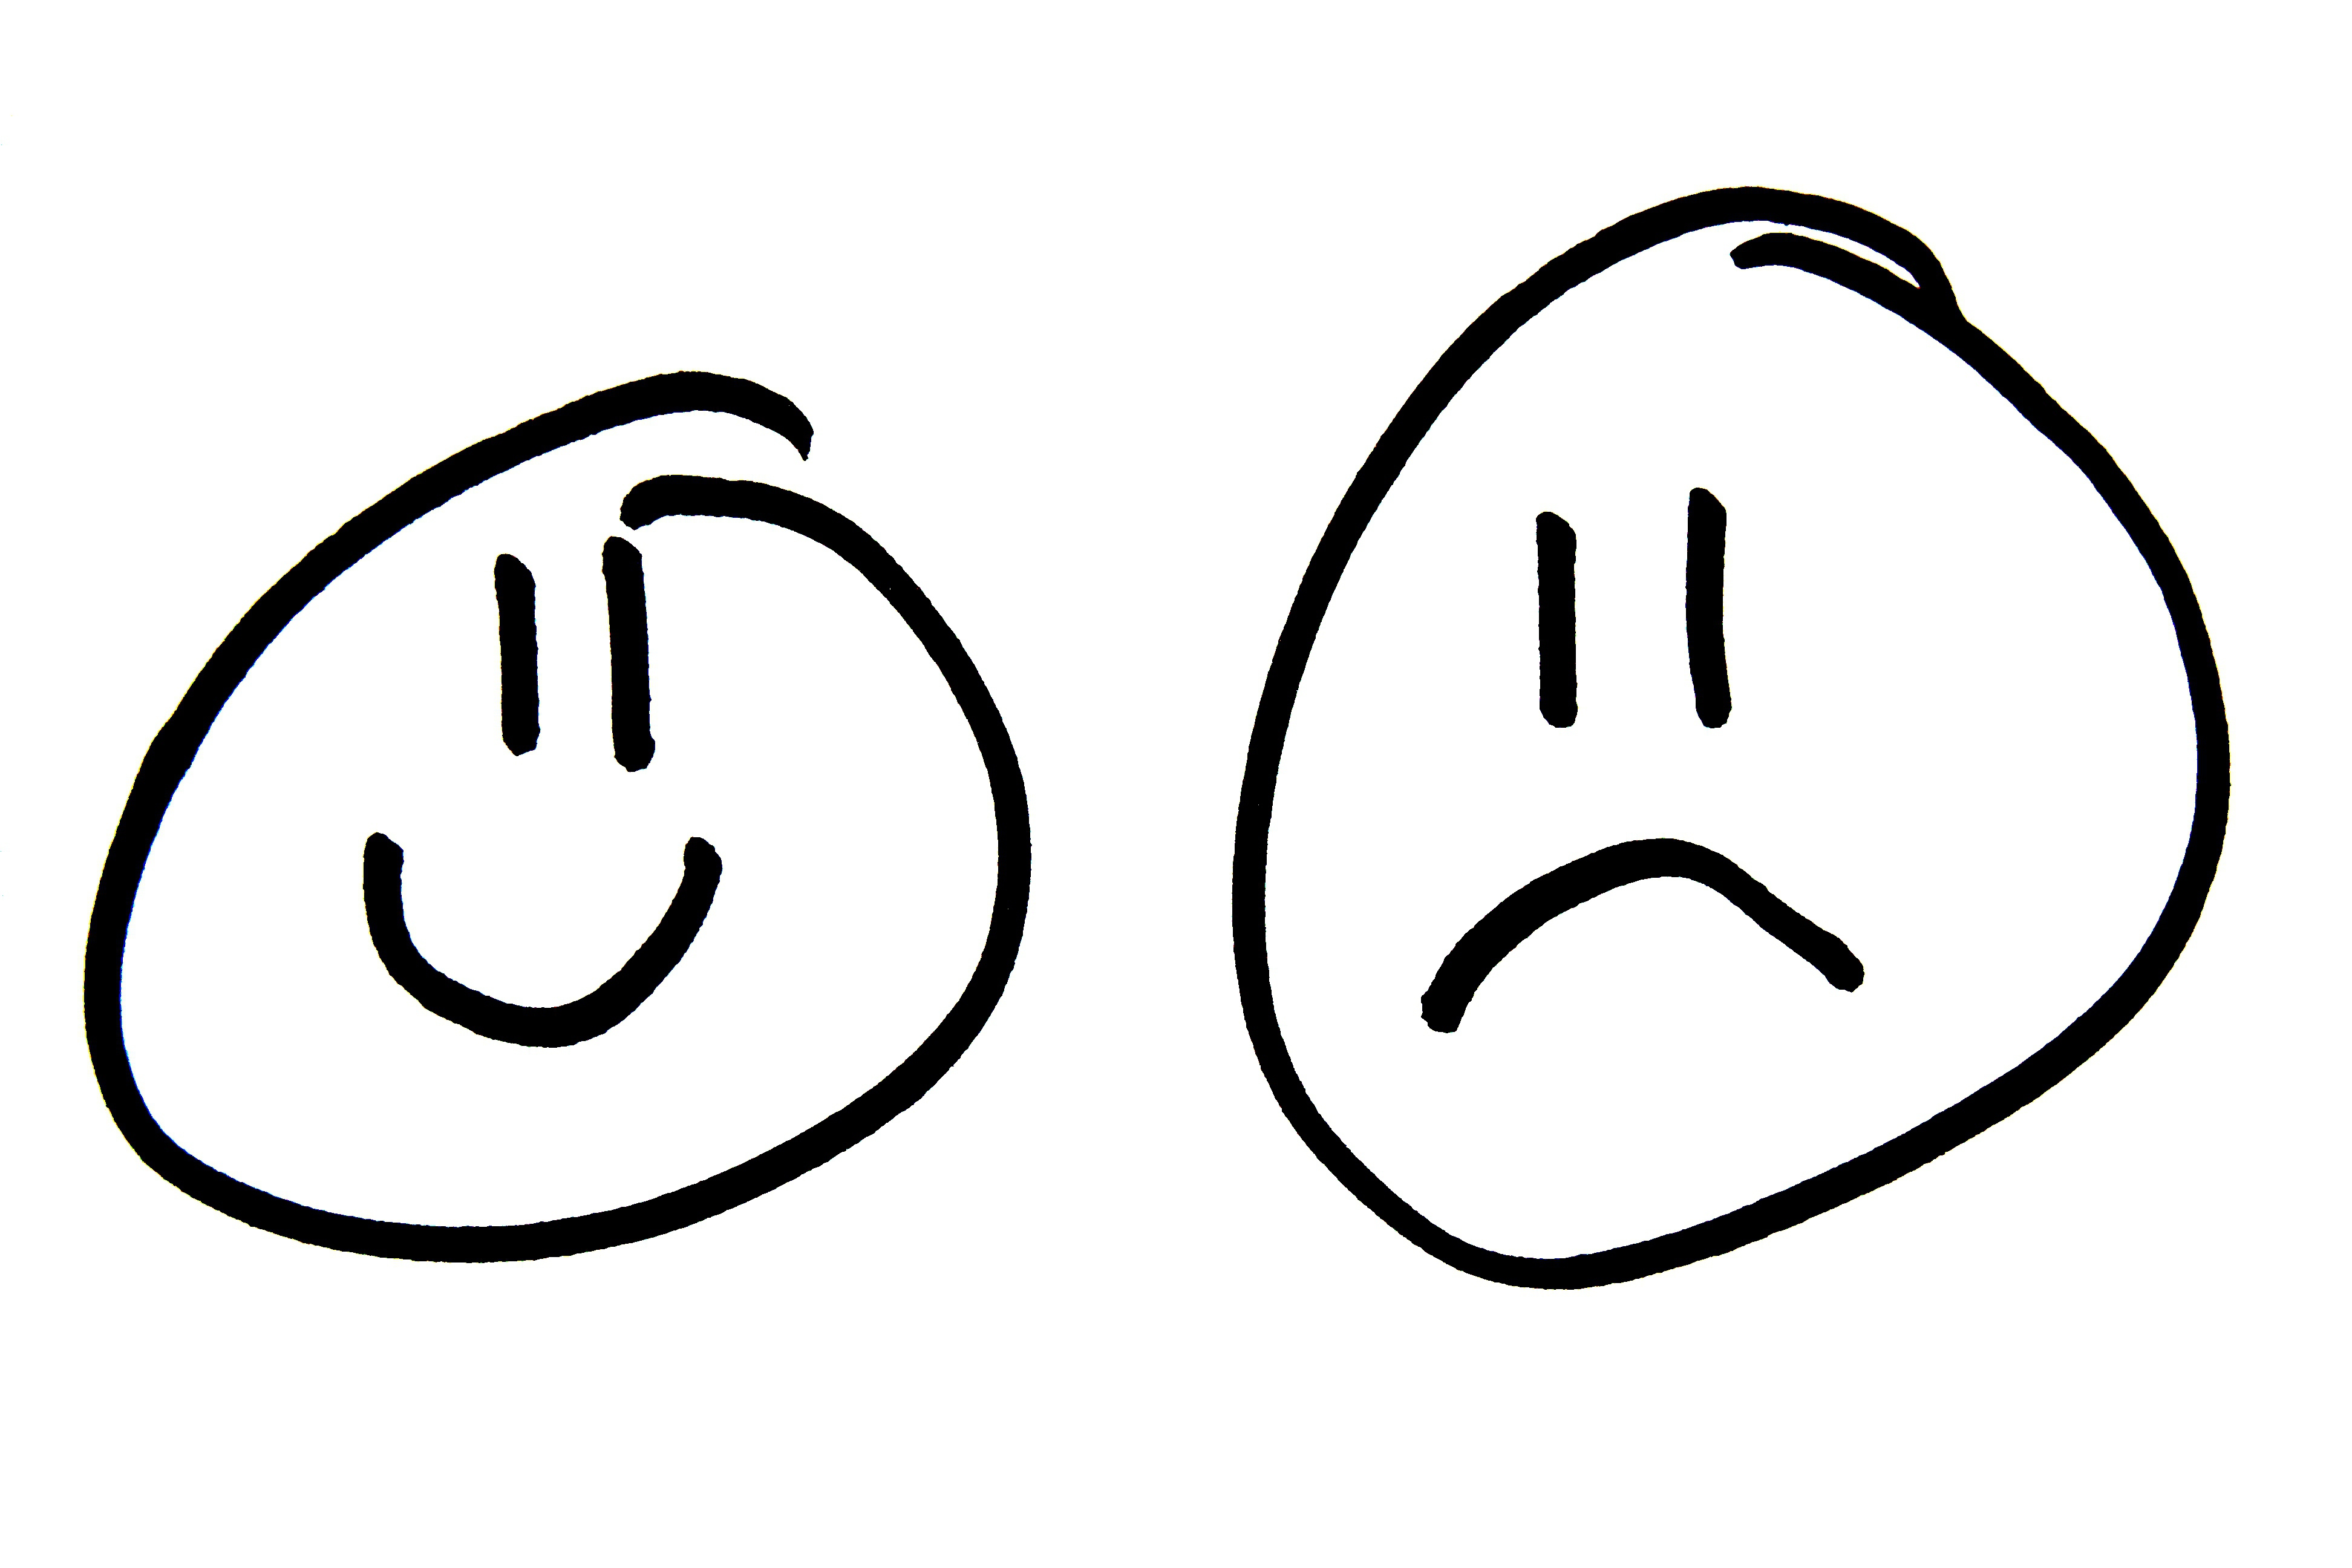 3888x2592 Smiley Clipart Customer Service